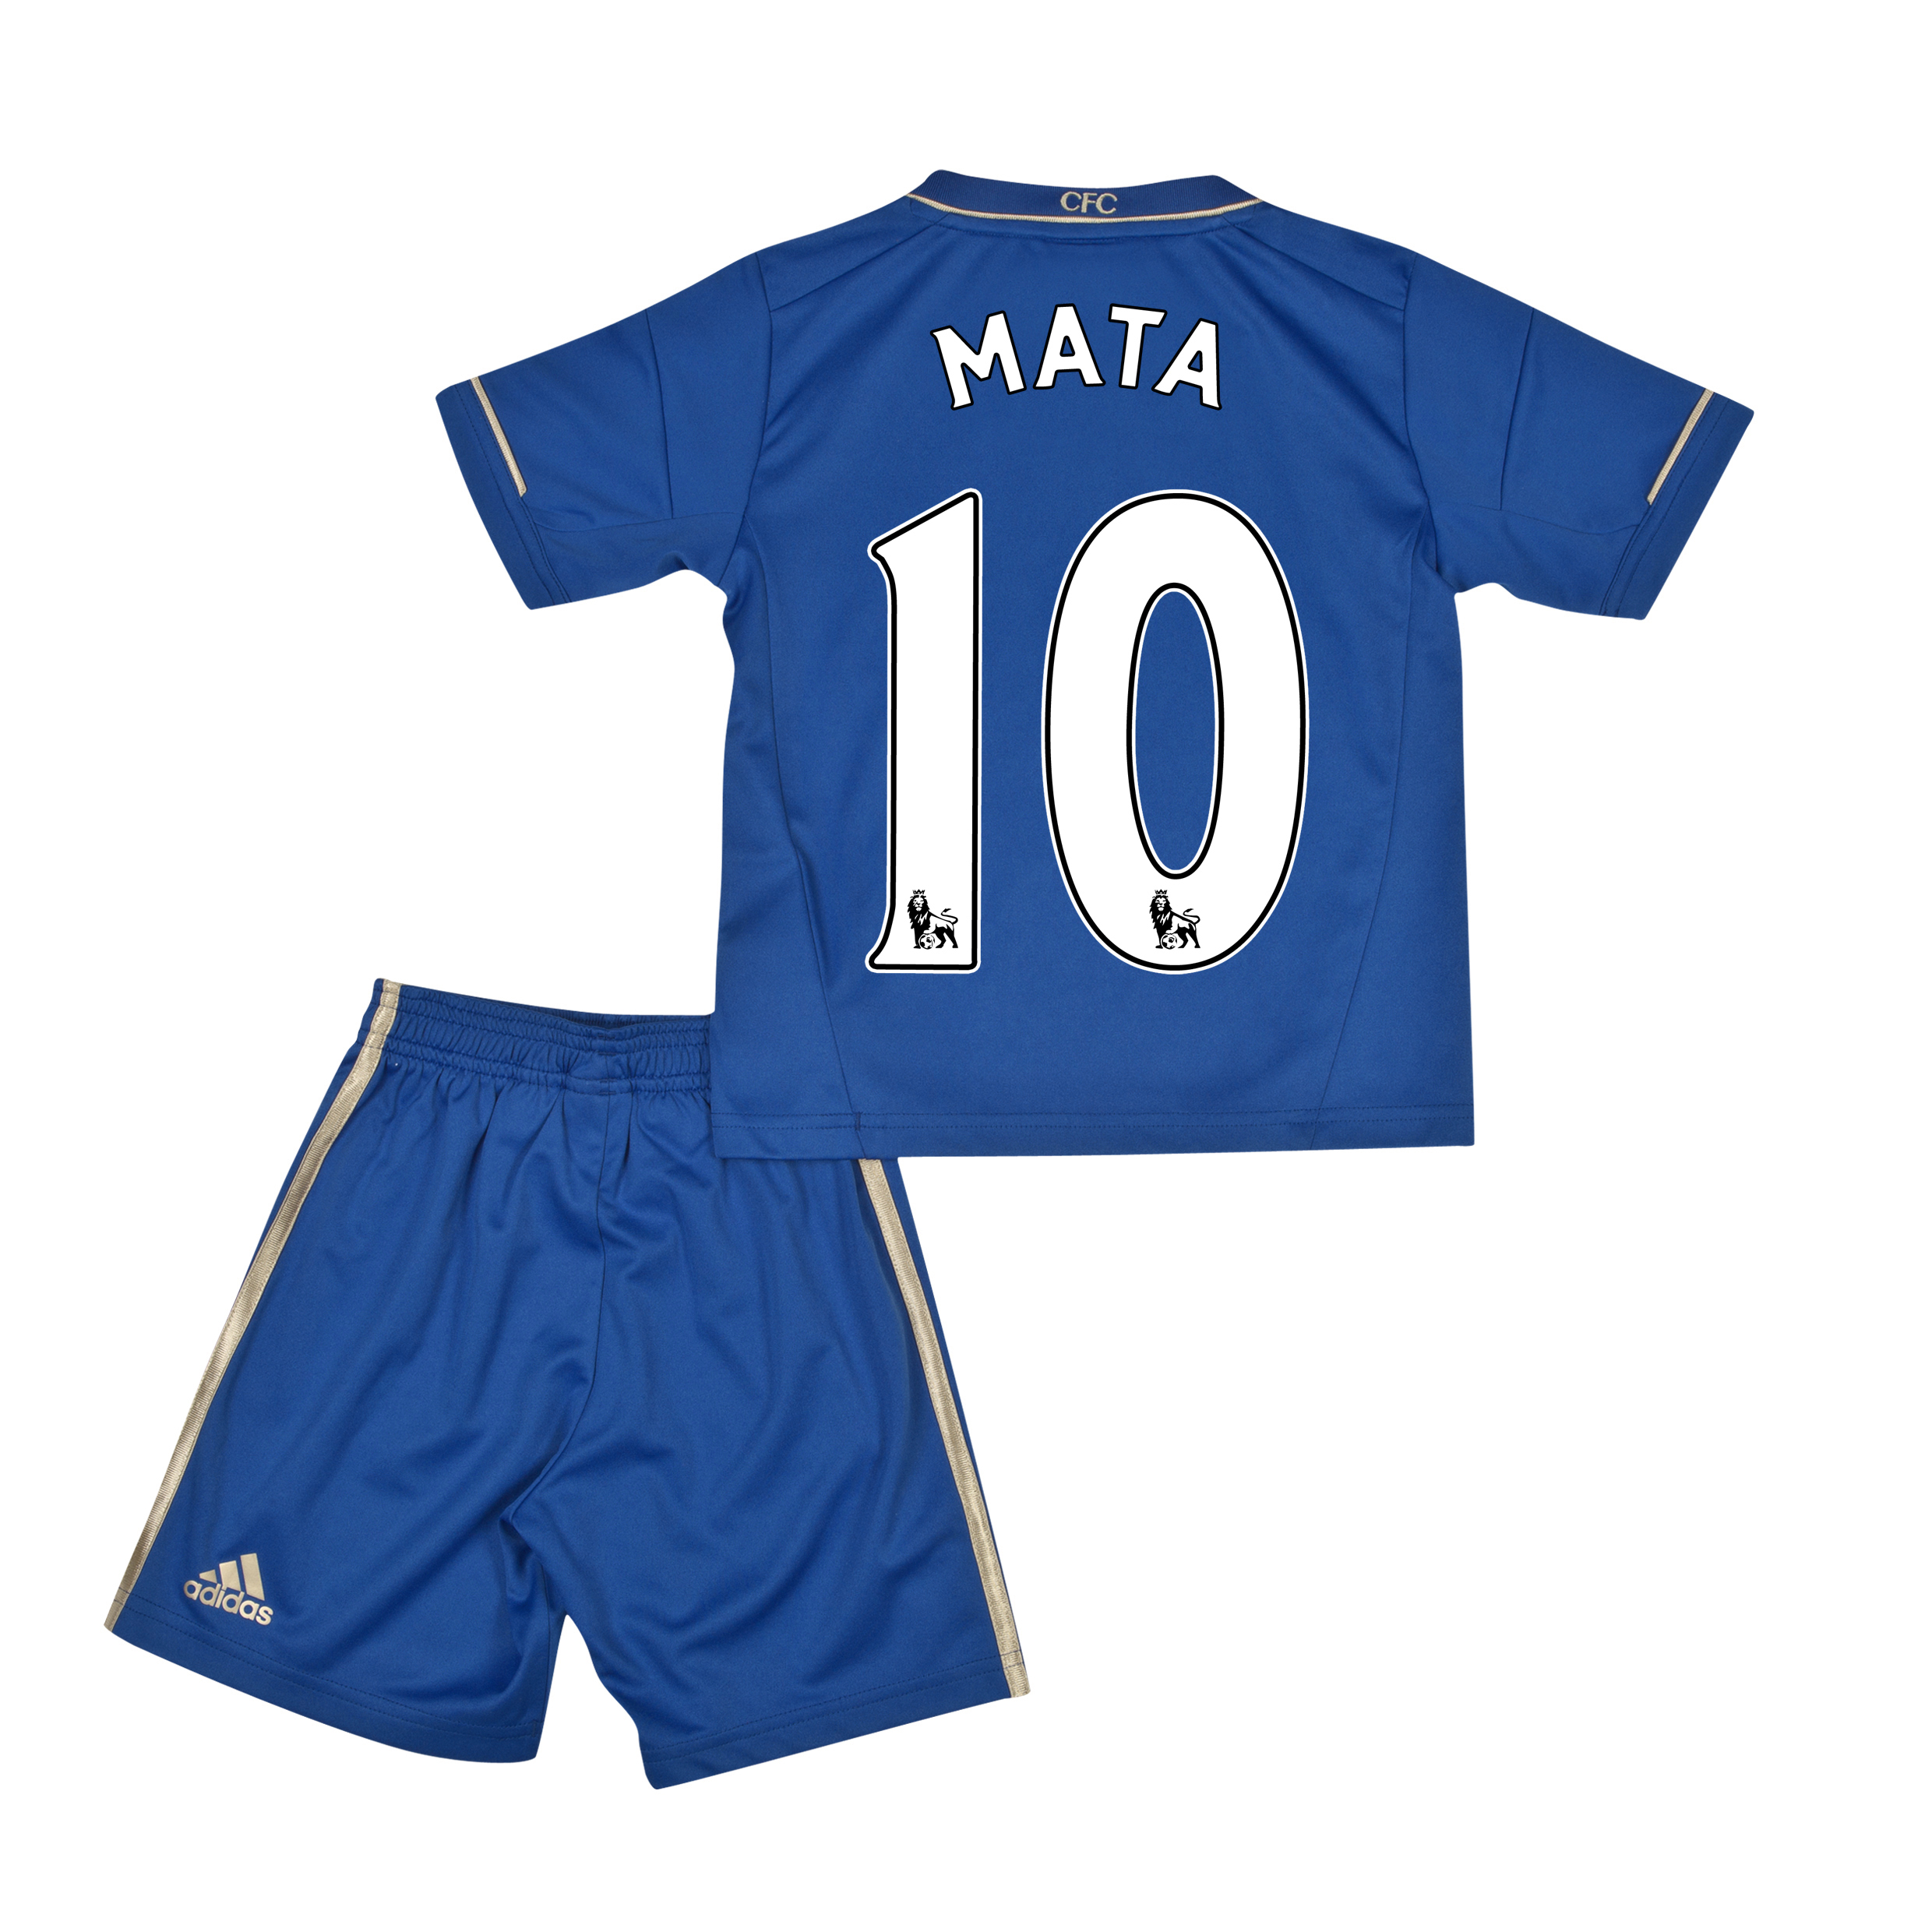 Chelsea Home Mini Kit 2012/13 with Mata 10 printing